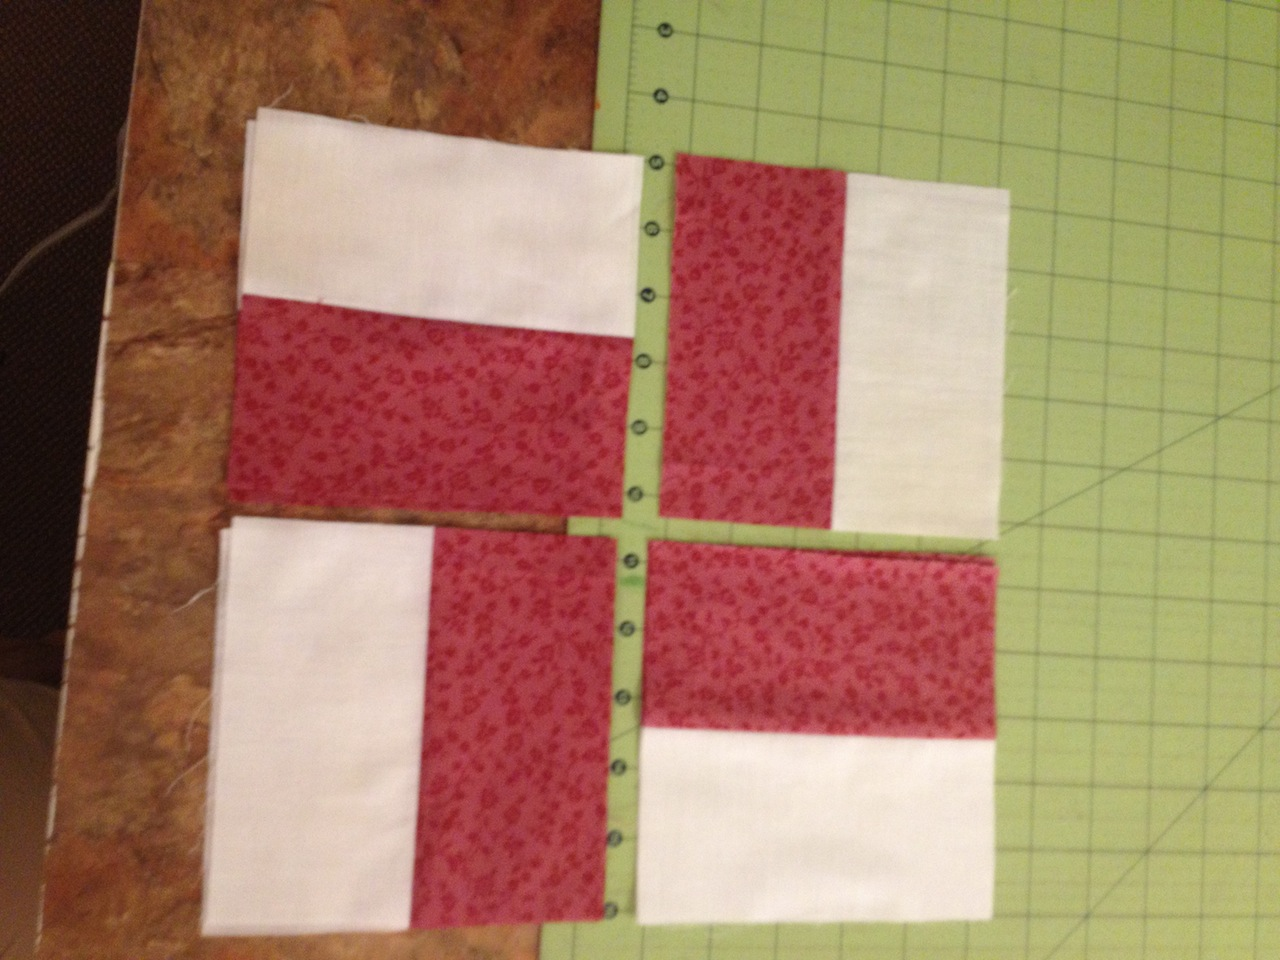 Confessions of a Fabric Addict: 100 Quilts For Kids - Tutorial for a Quick & Easy Quilt!